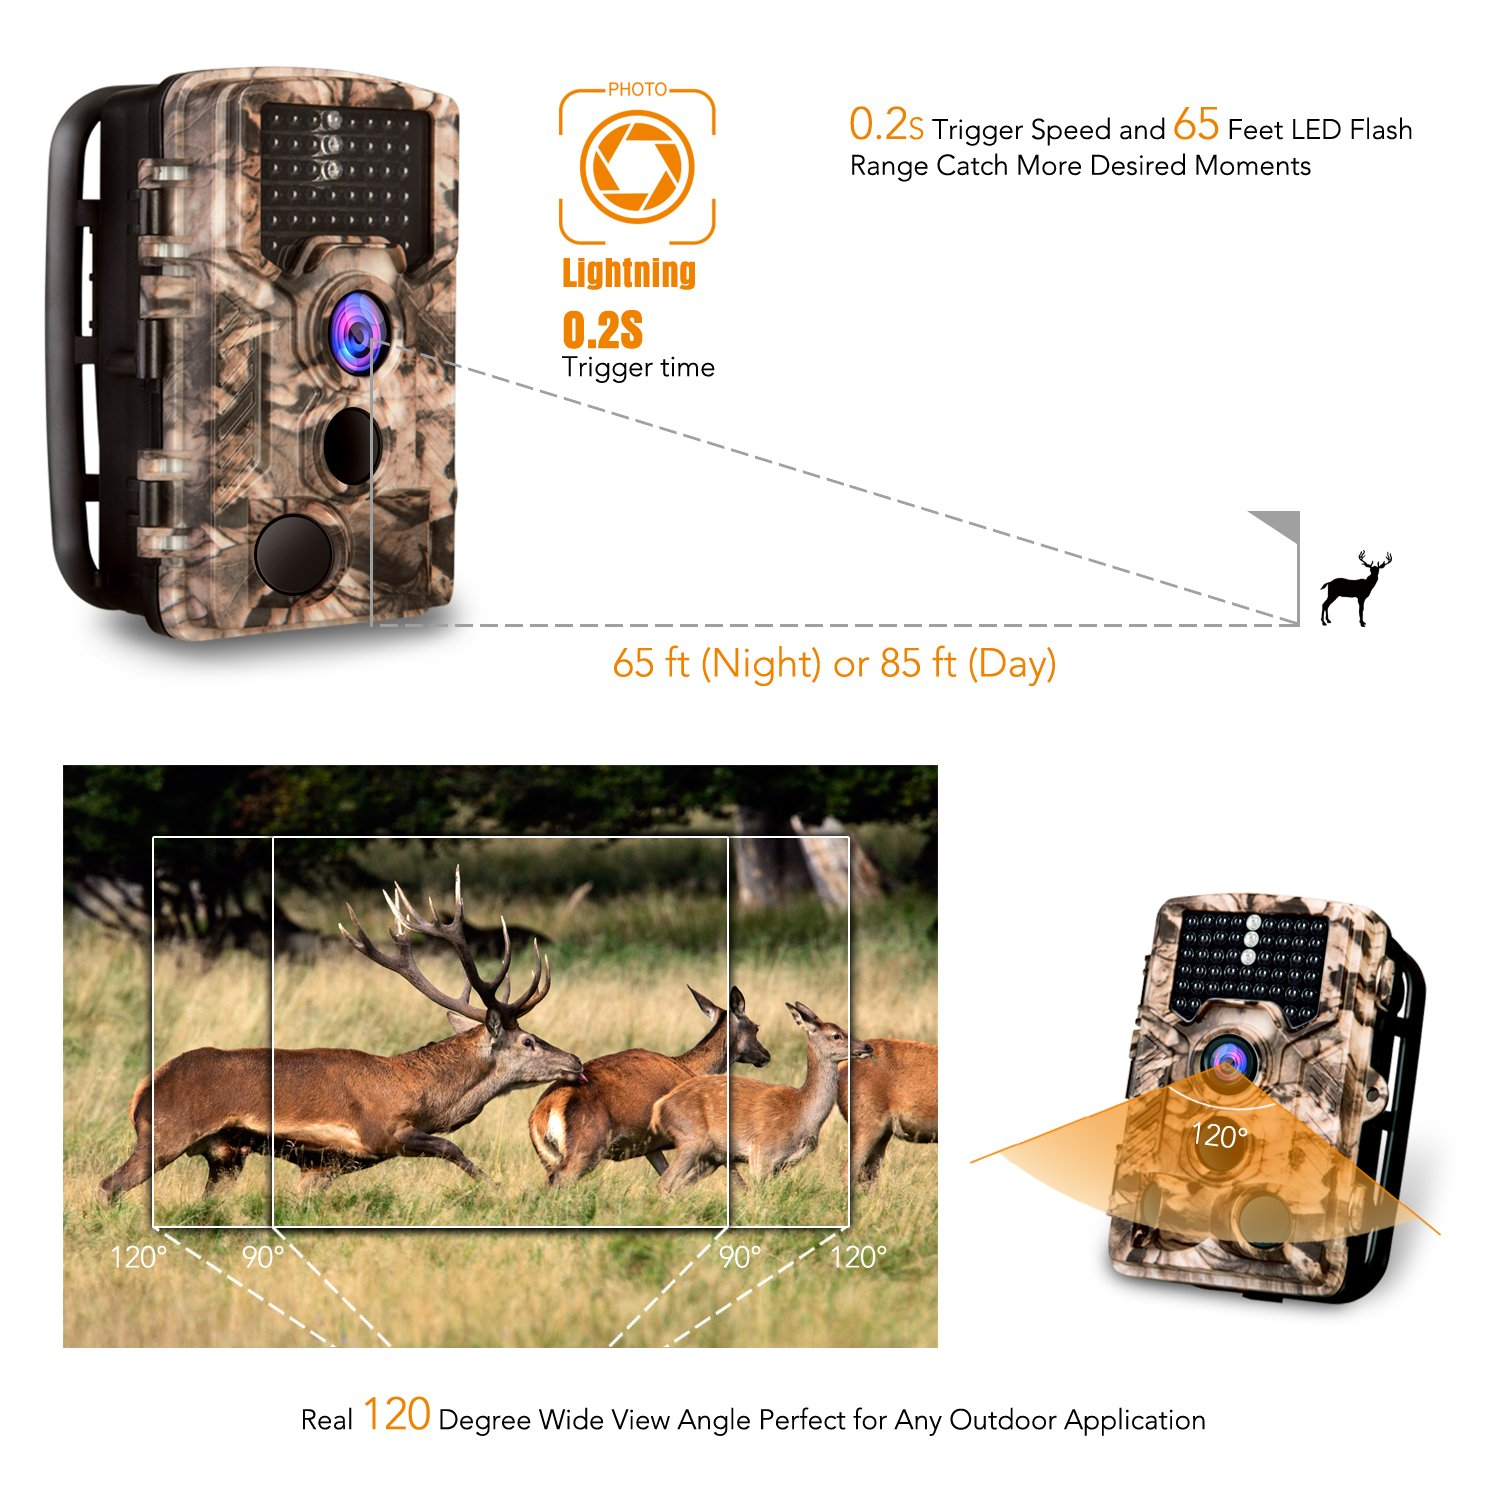 "Amazon.com : AIMTOM Trail Hunting Camera 16MP Image 1080P Video 46Pcs IR  LEDs Infrared 0.2S Trigger Time Waterproof Night Vision 120° Wide Angle  2.4"" LCD ..."